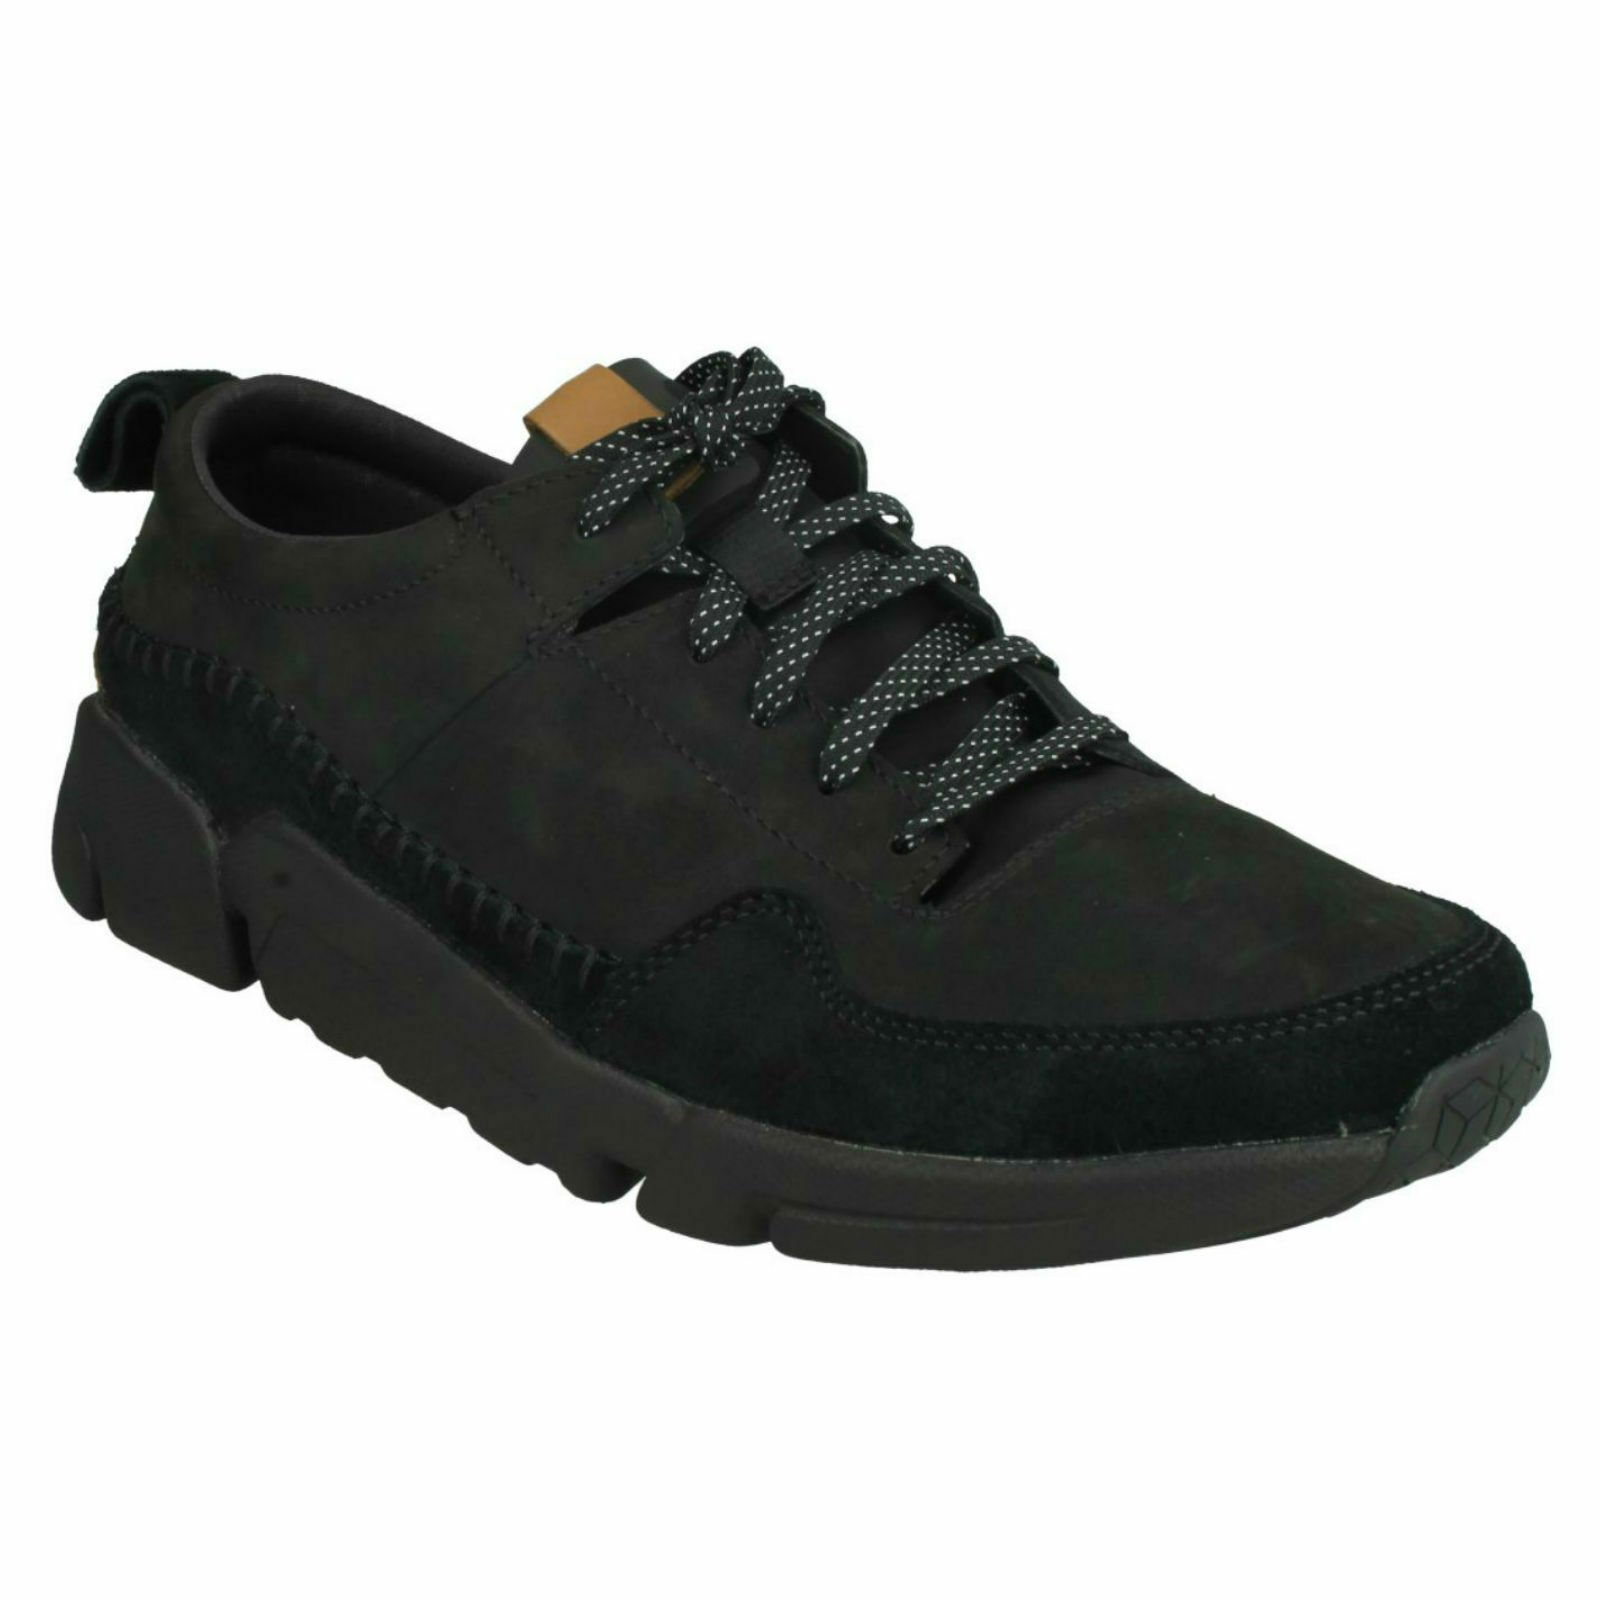 TRI ACTIVE RUN  Herren CLARKS LEATHER LACE UP LIGHTWEIGHT CASUAL SPORTY TRAINERS